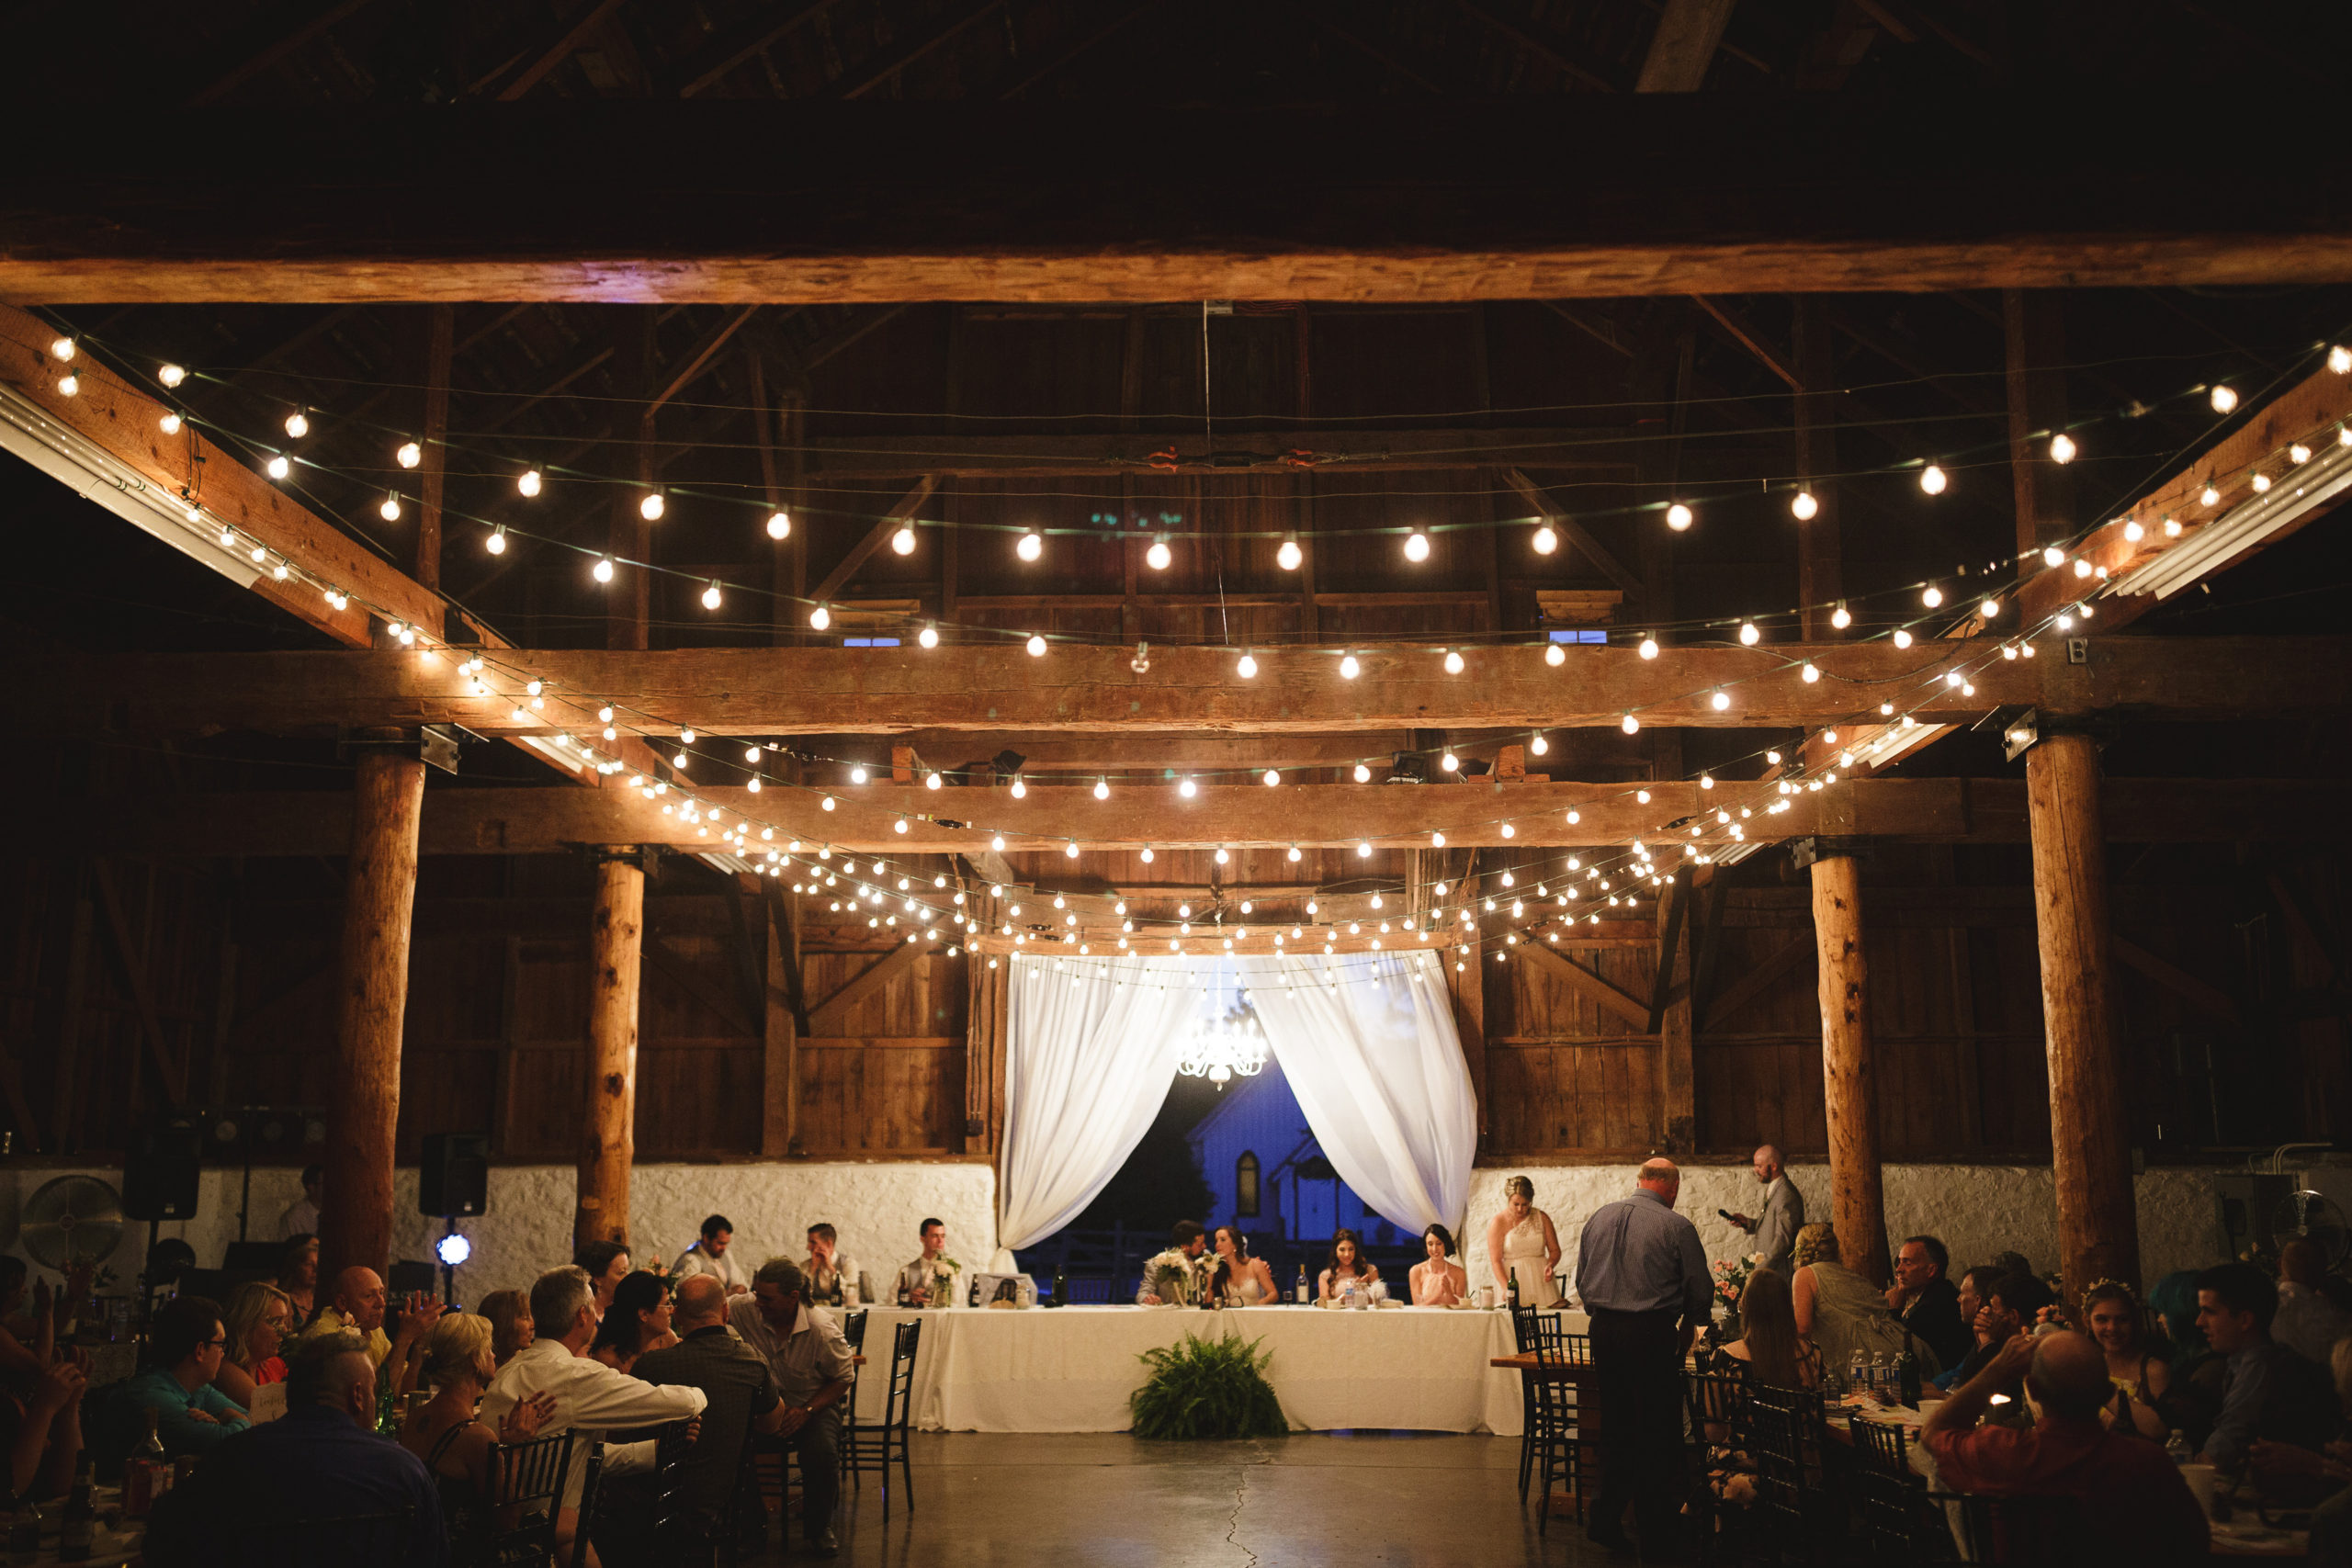 d Balls Falls Big Barn Wedding Reception Indoor